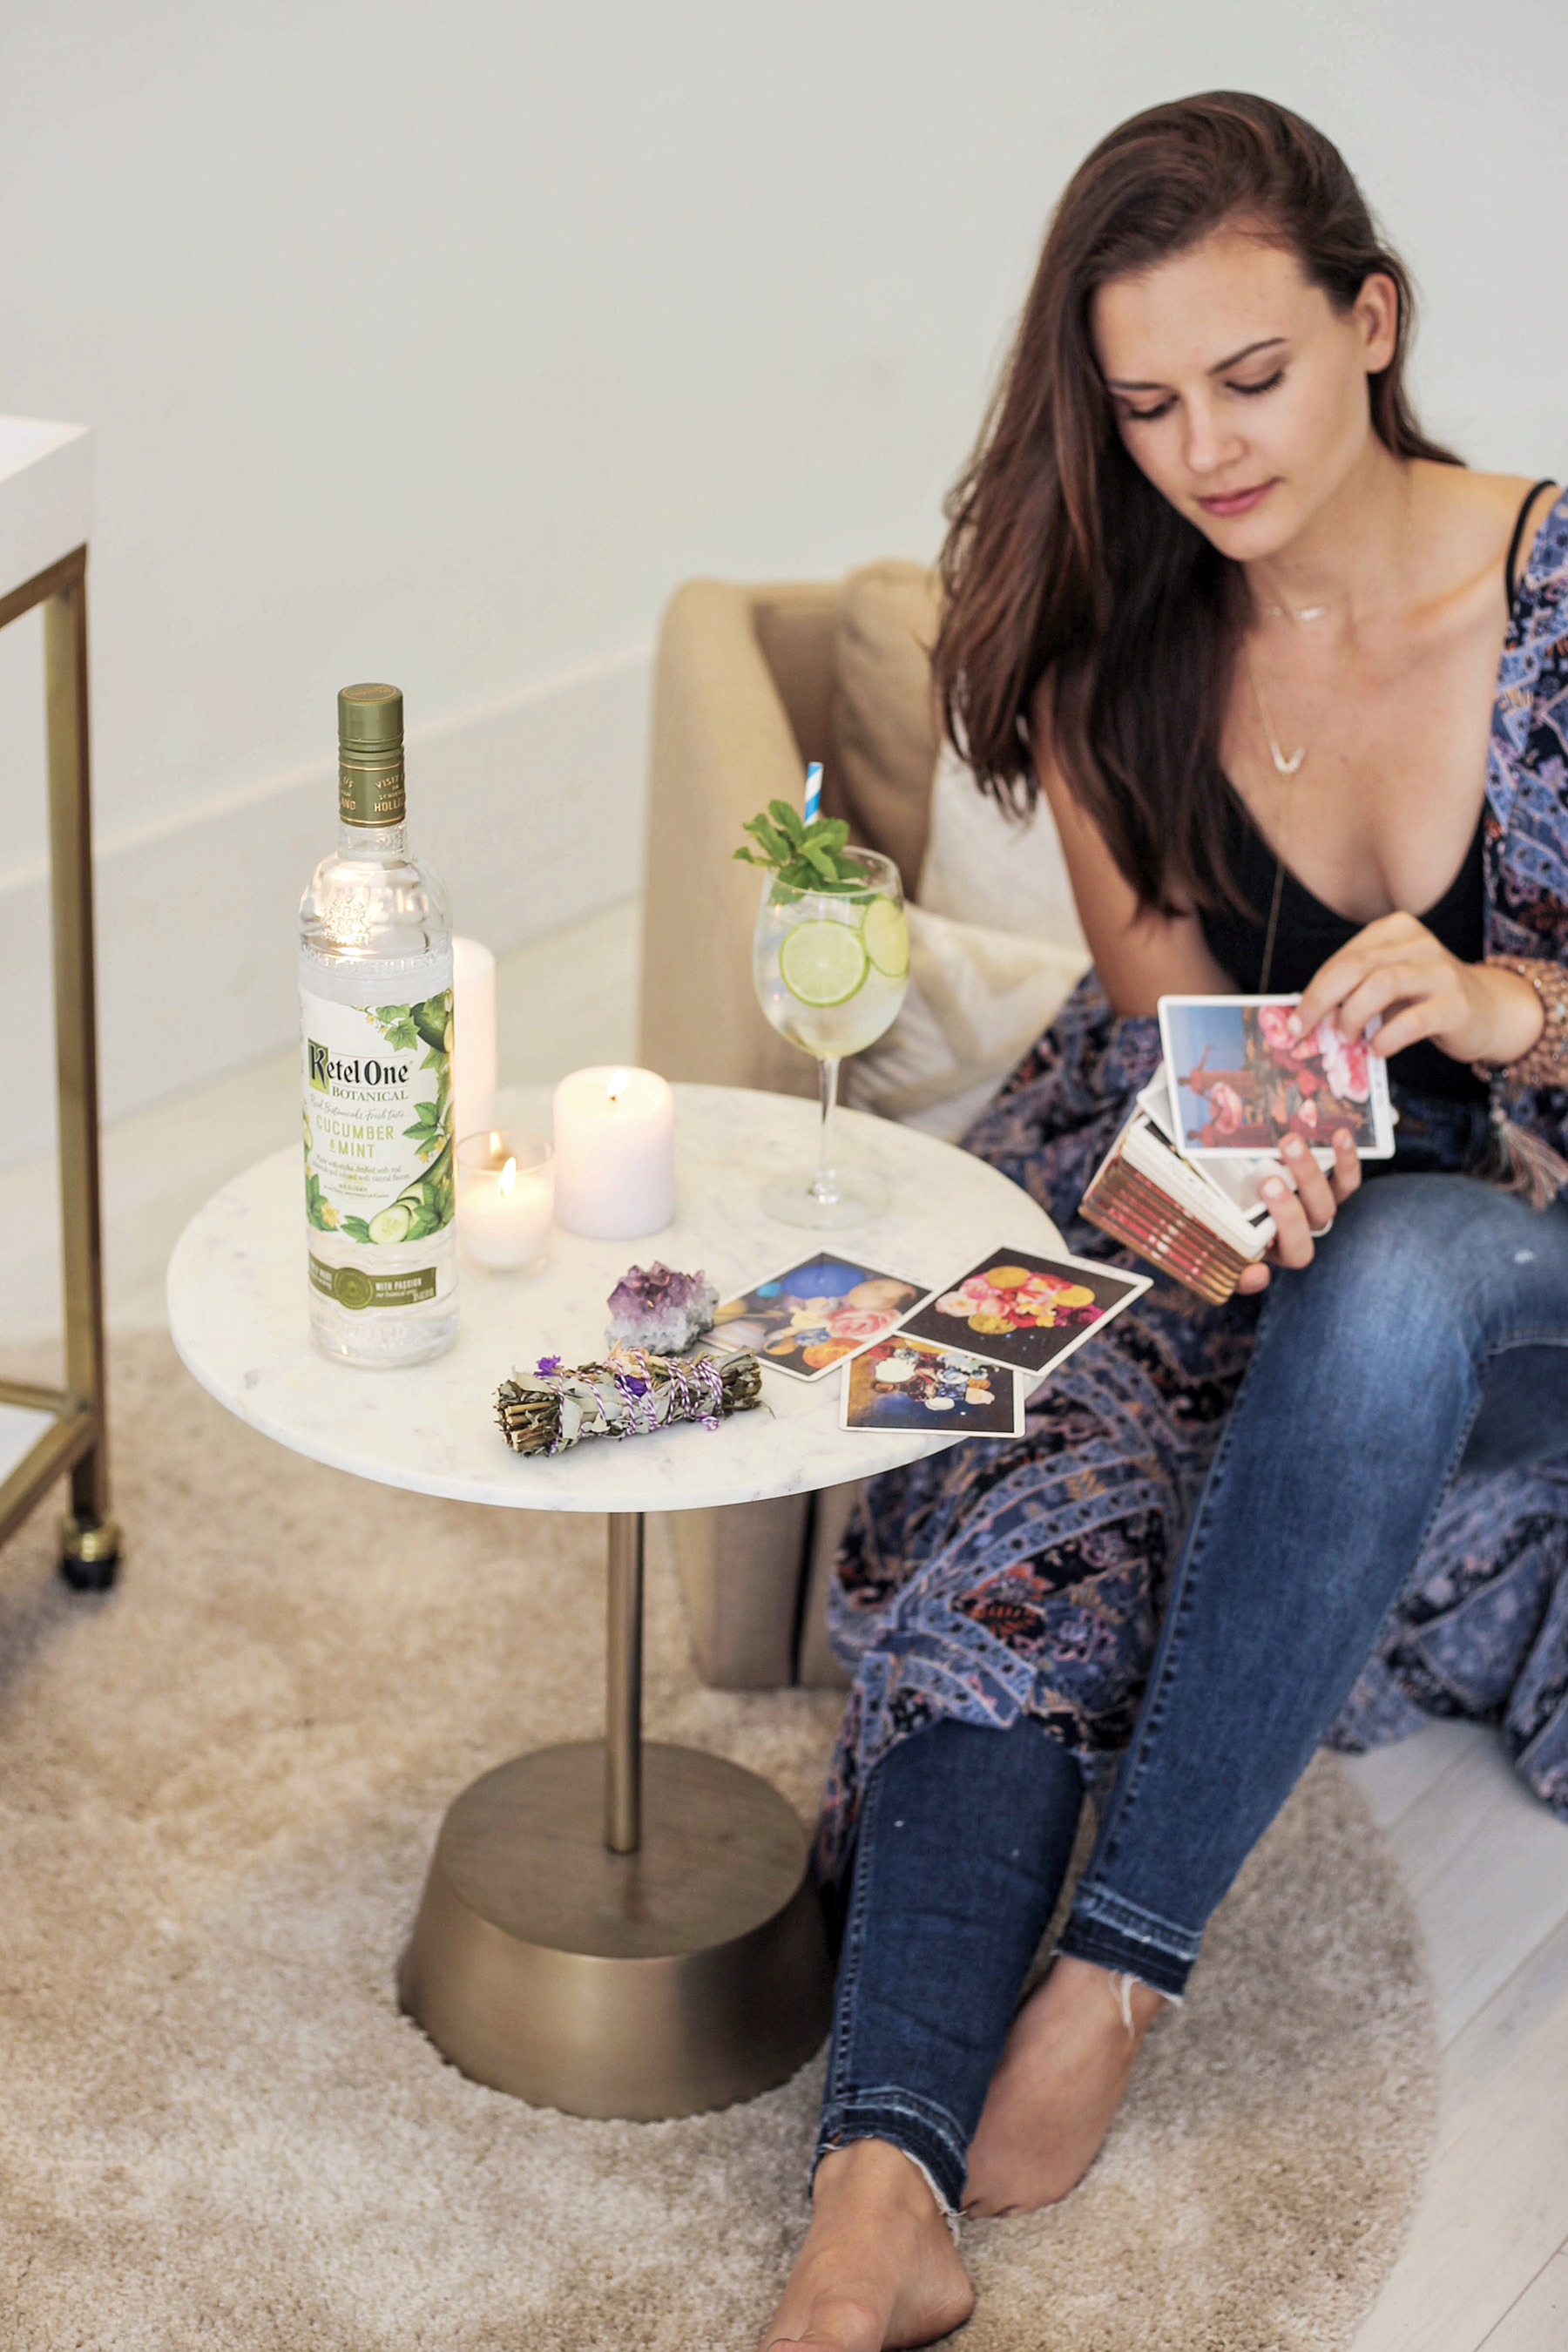 Kate Van Horn prepares for a Spiritual Night In with her closest circle using tarot cards